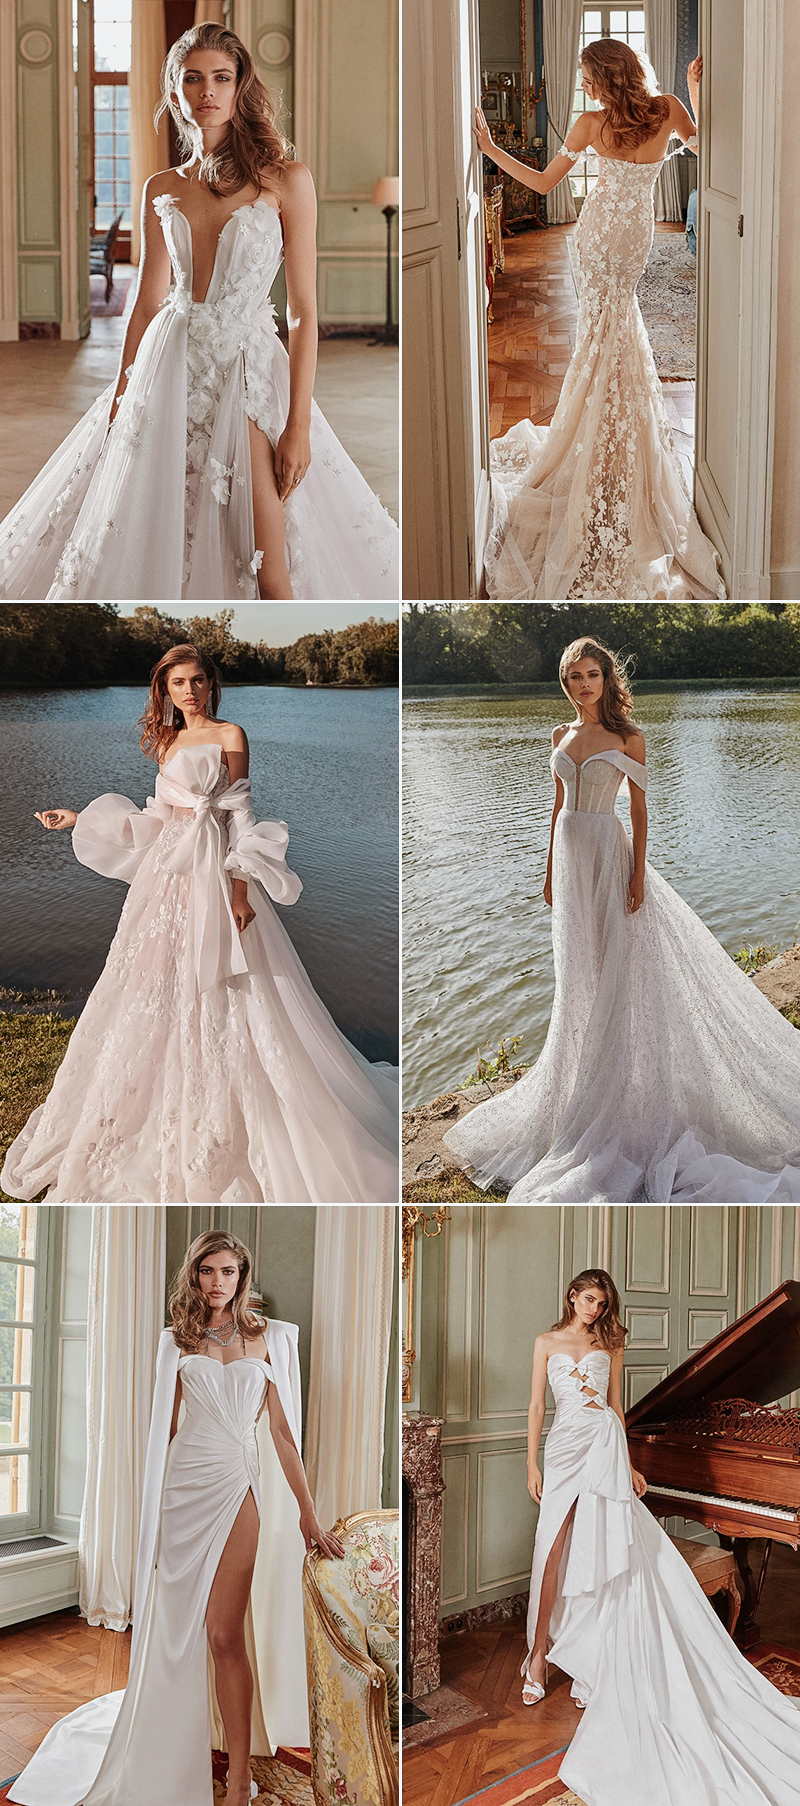 Bridal Fall 2020 wedding dress collections